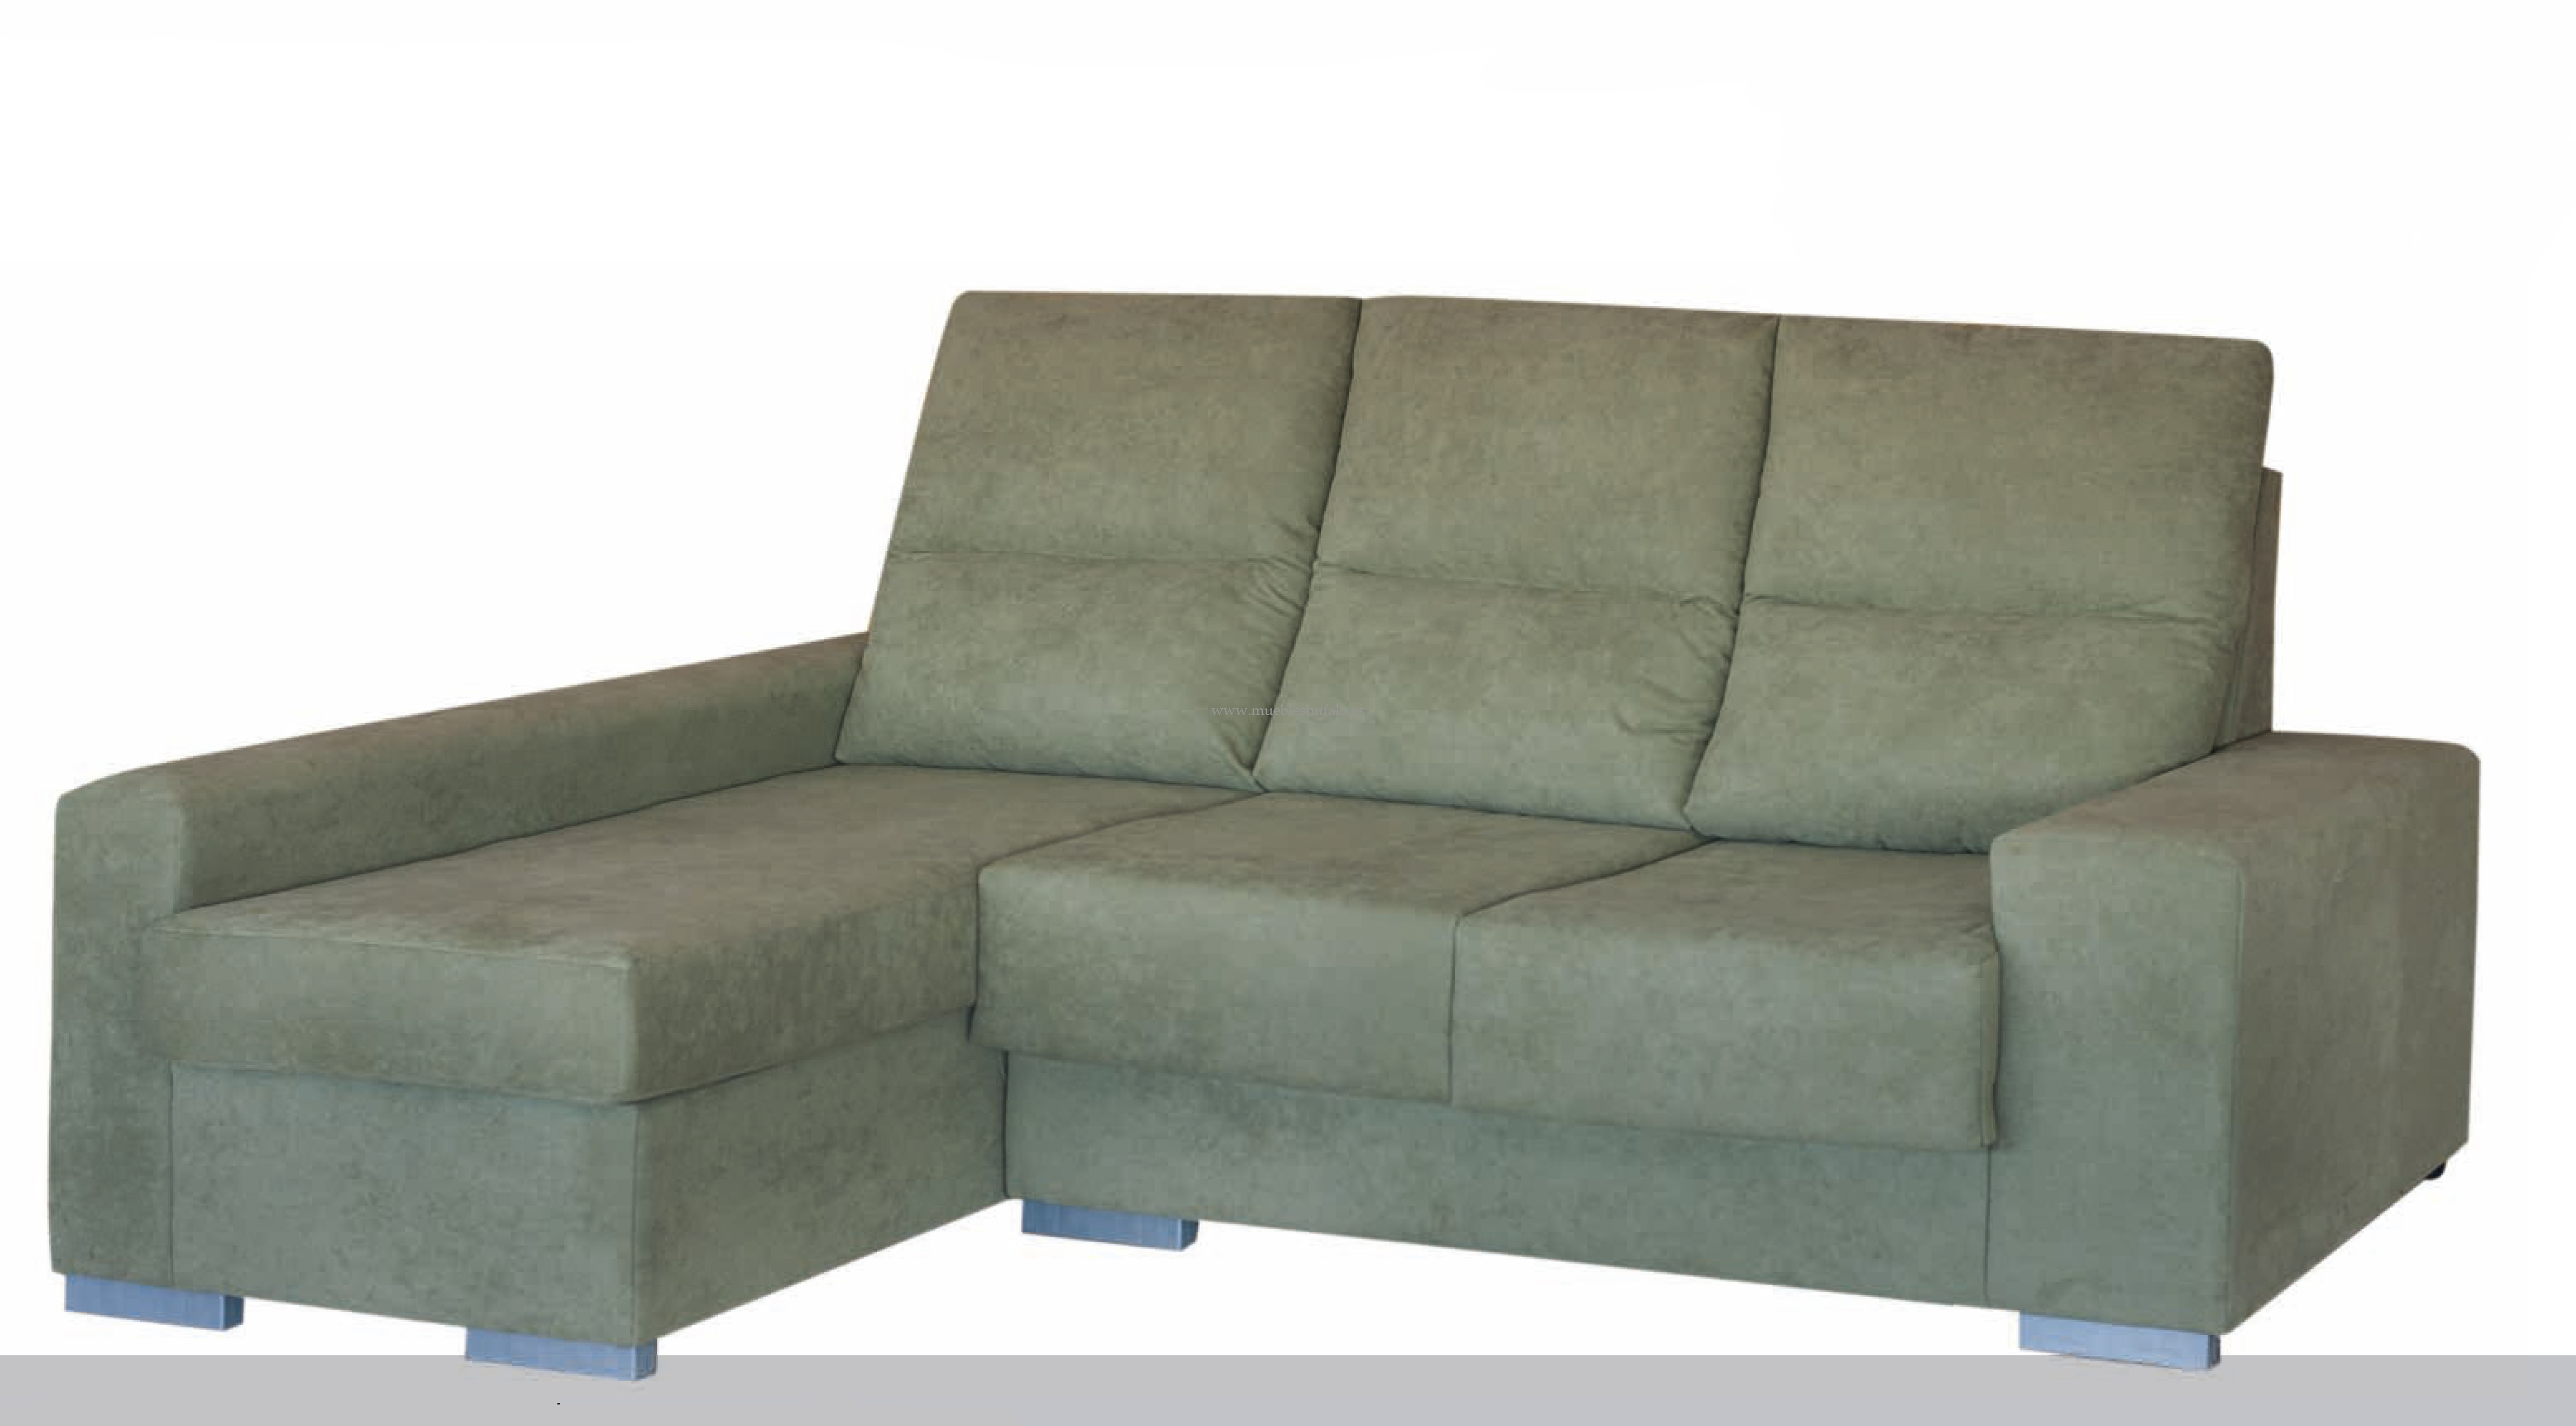 sofa_chaiselongue_barato_bufalo_sofia